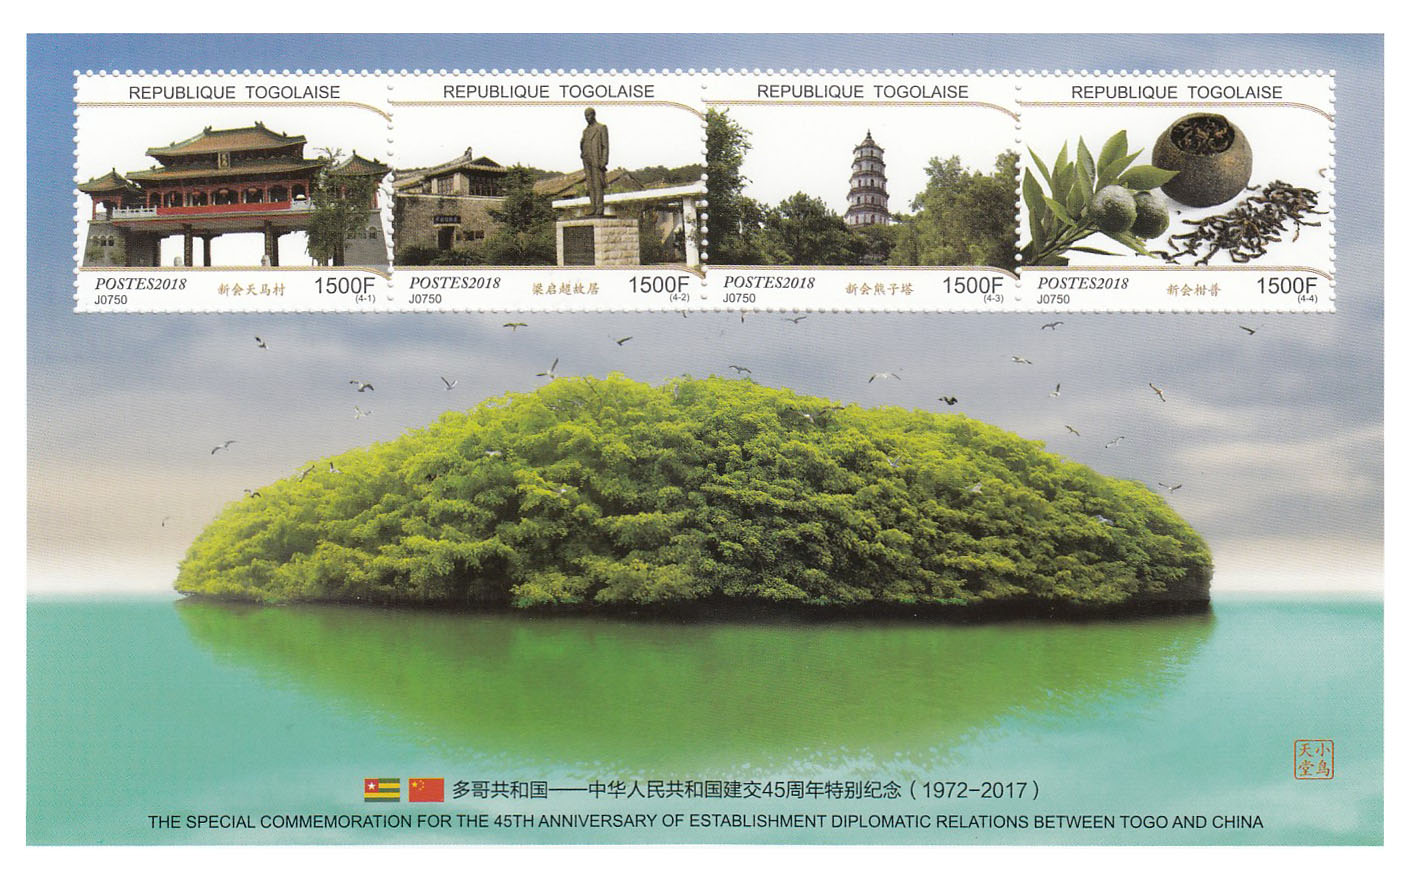 Diplomatic relations between Togo and China - Issue of Togo postage stamps